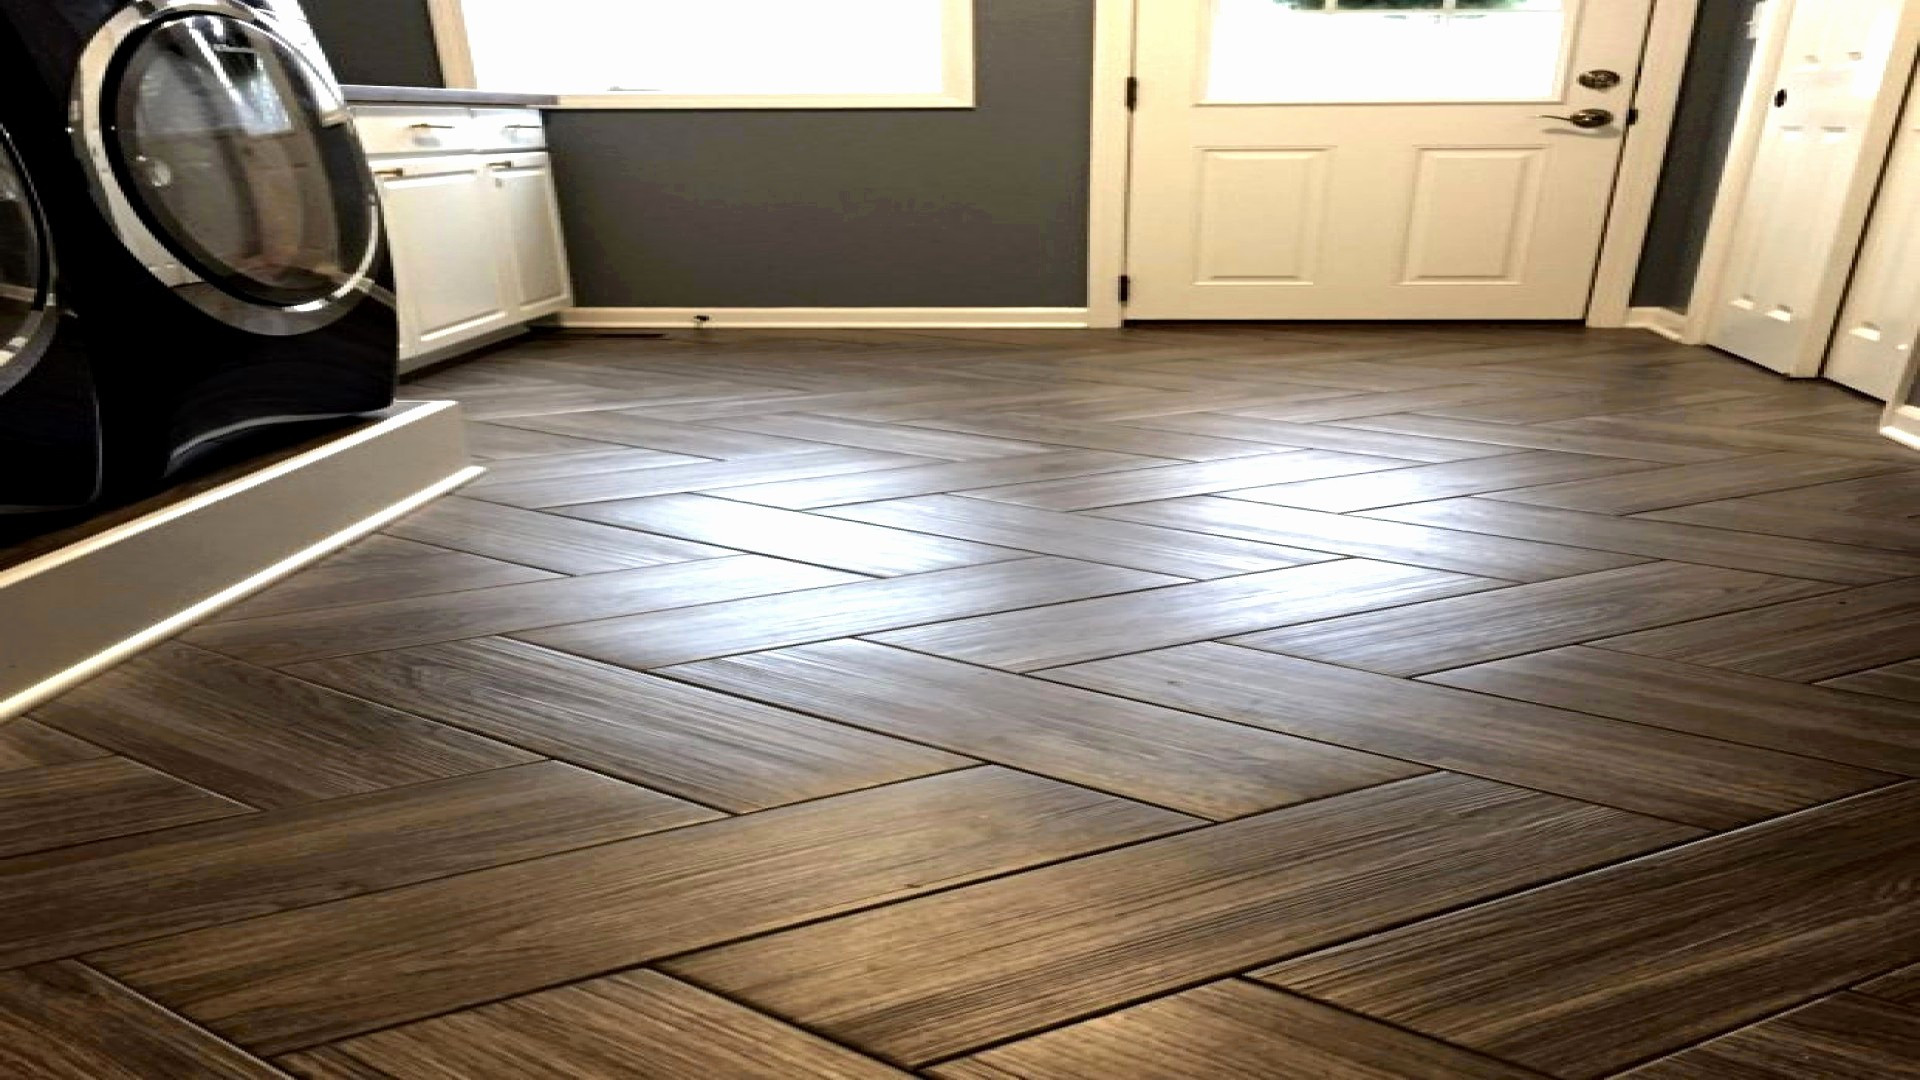 mirage engineered hardwood flooring prices of 19 awesome hardwood flooring for sale photograph dizpos com within hardwood flooring for sale best of 52 luxury wood flooring sale 52 s photograph